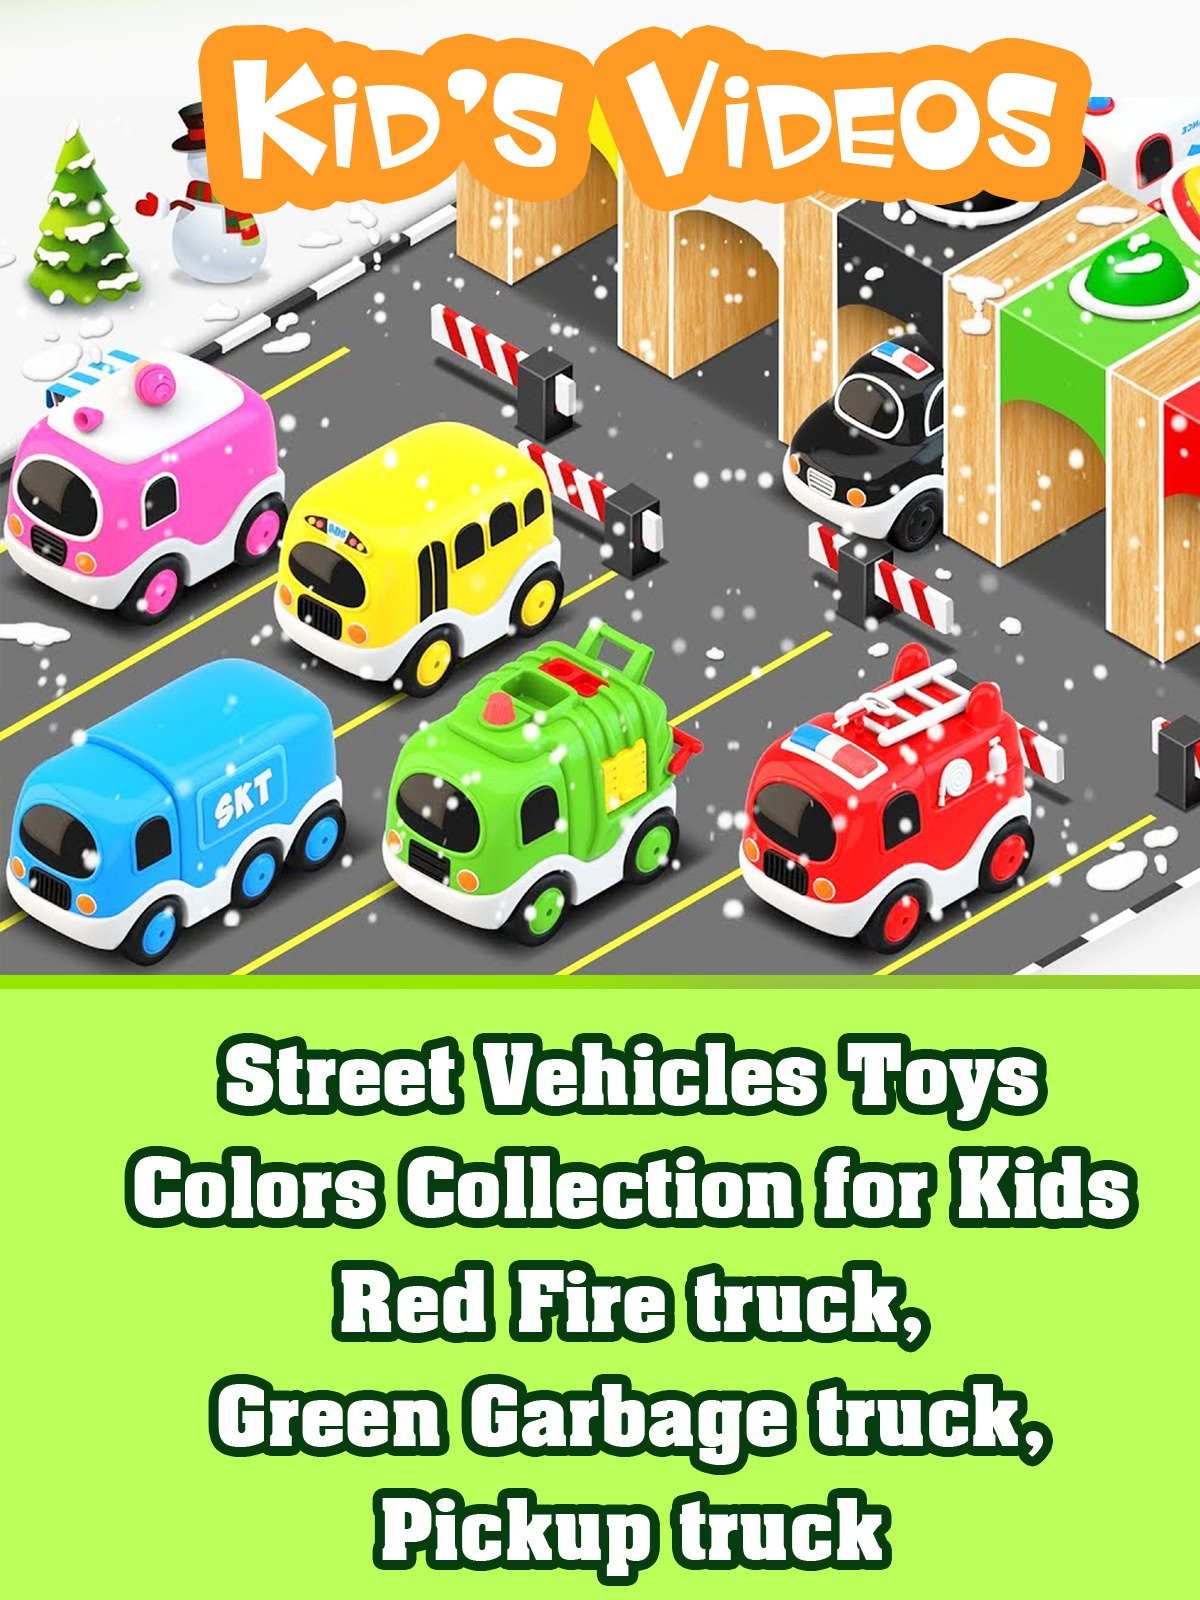 Street Vehicles Toys Colors Collection for Kids Red Fire truck, Green Garbage truck, Pickup truck